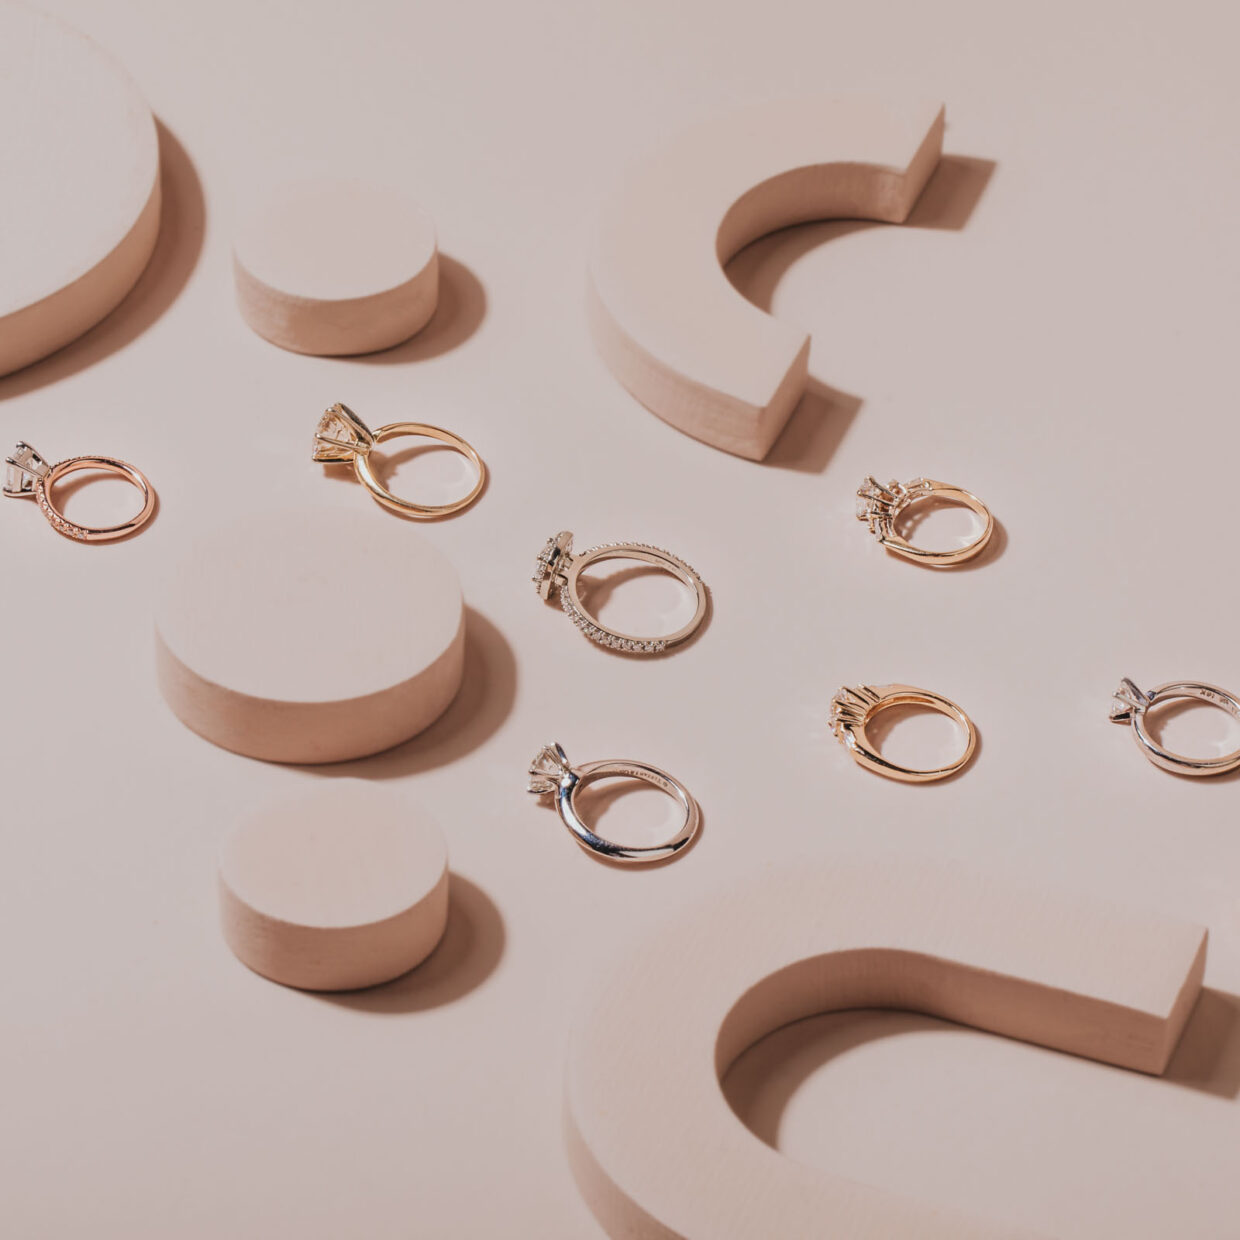 Professional and creative layflat ideas for photographing jewelry and diamond engagement rings. Tiffany's, Birks and Cartier rings. Creative use of coloured blocks to add fun to the layflat styling